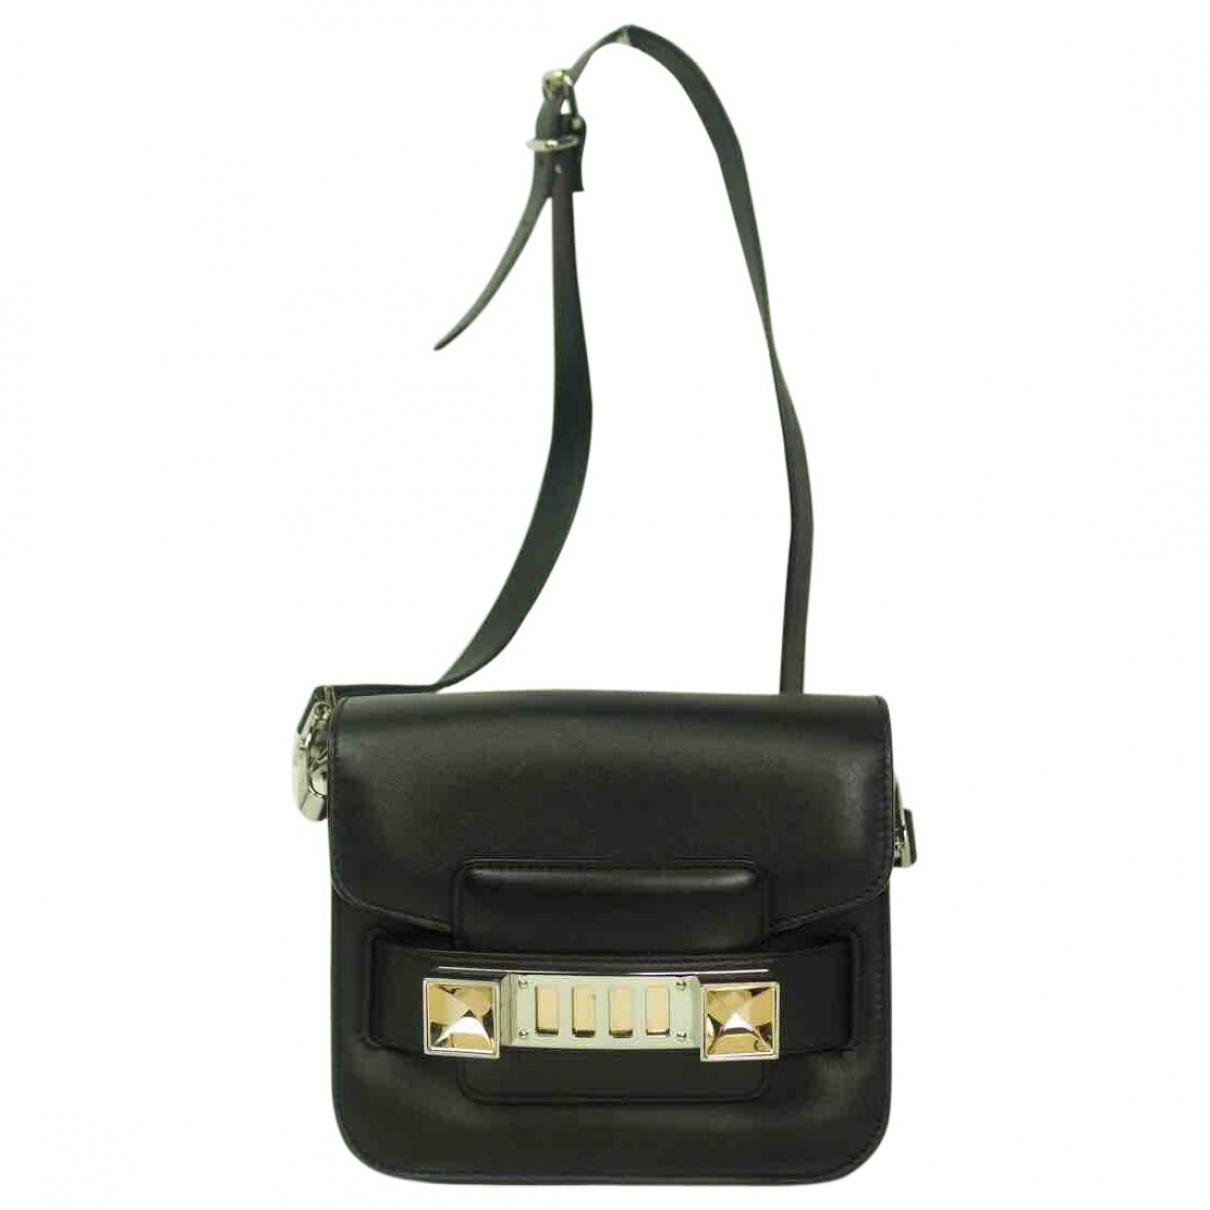 Proenza Schouler Pre-owned - Patent leather crossbody bag 1EJeUI4p